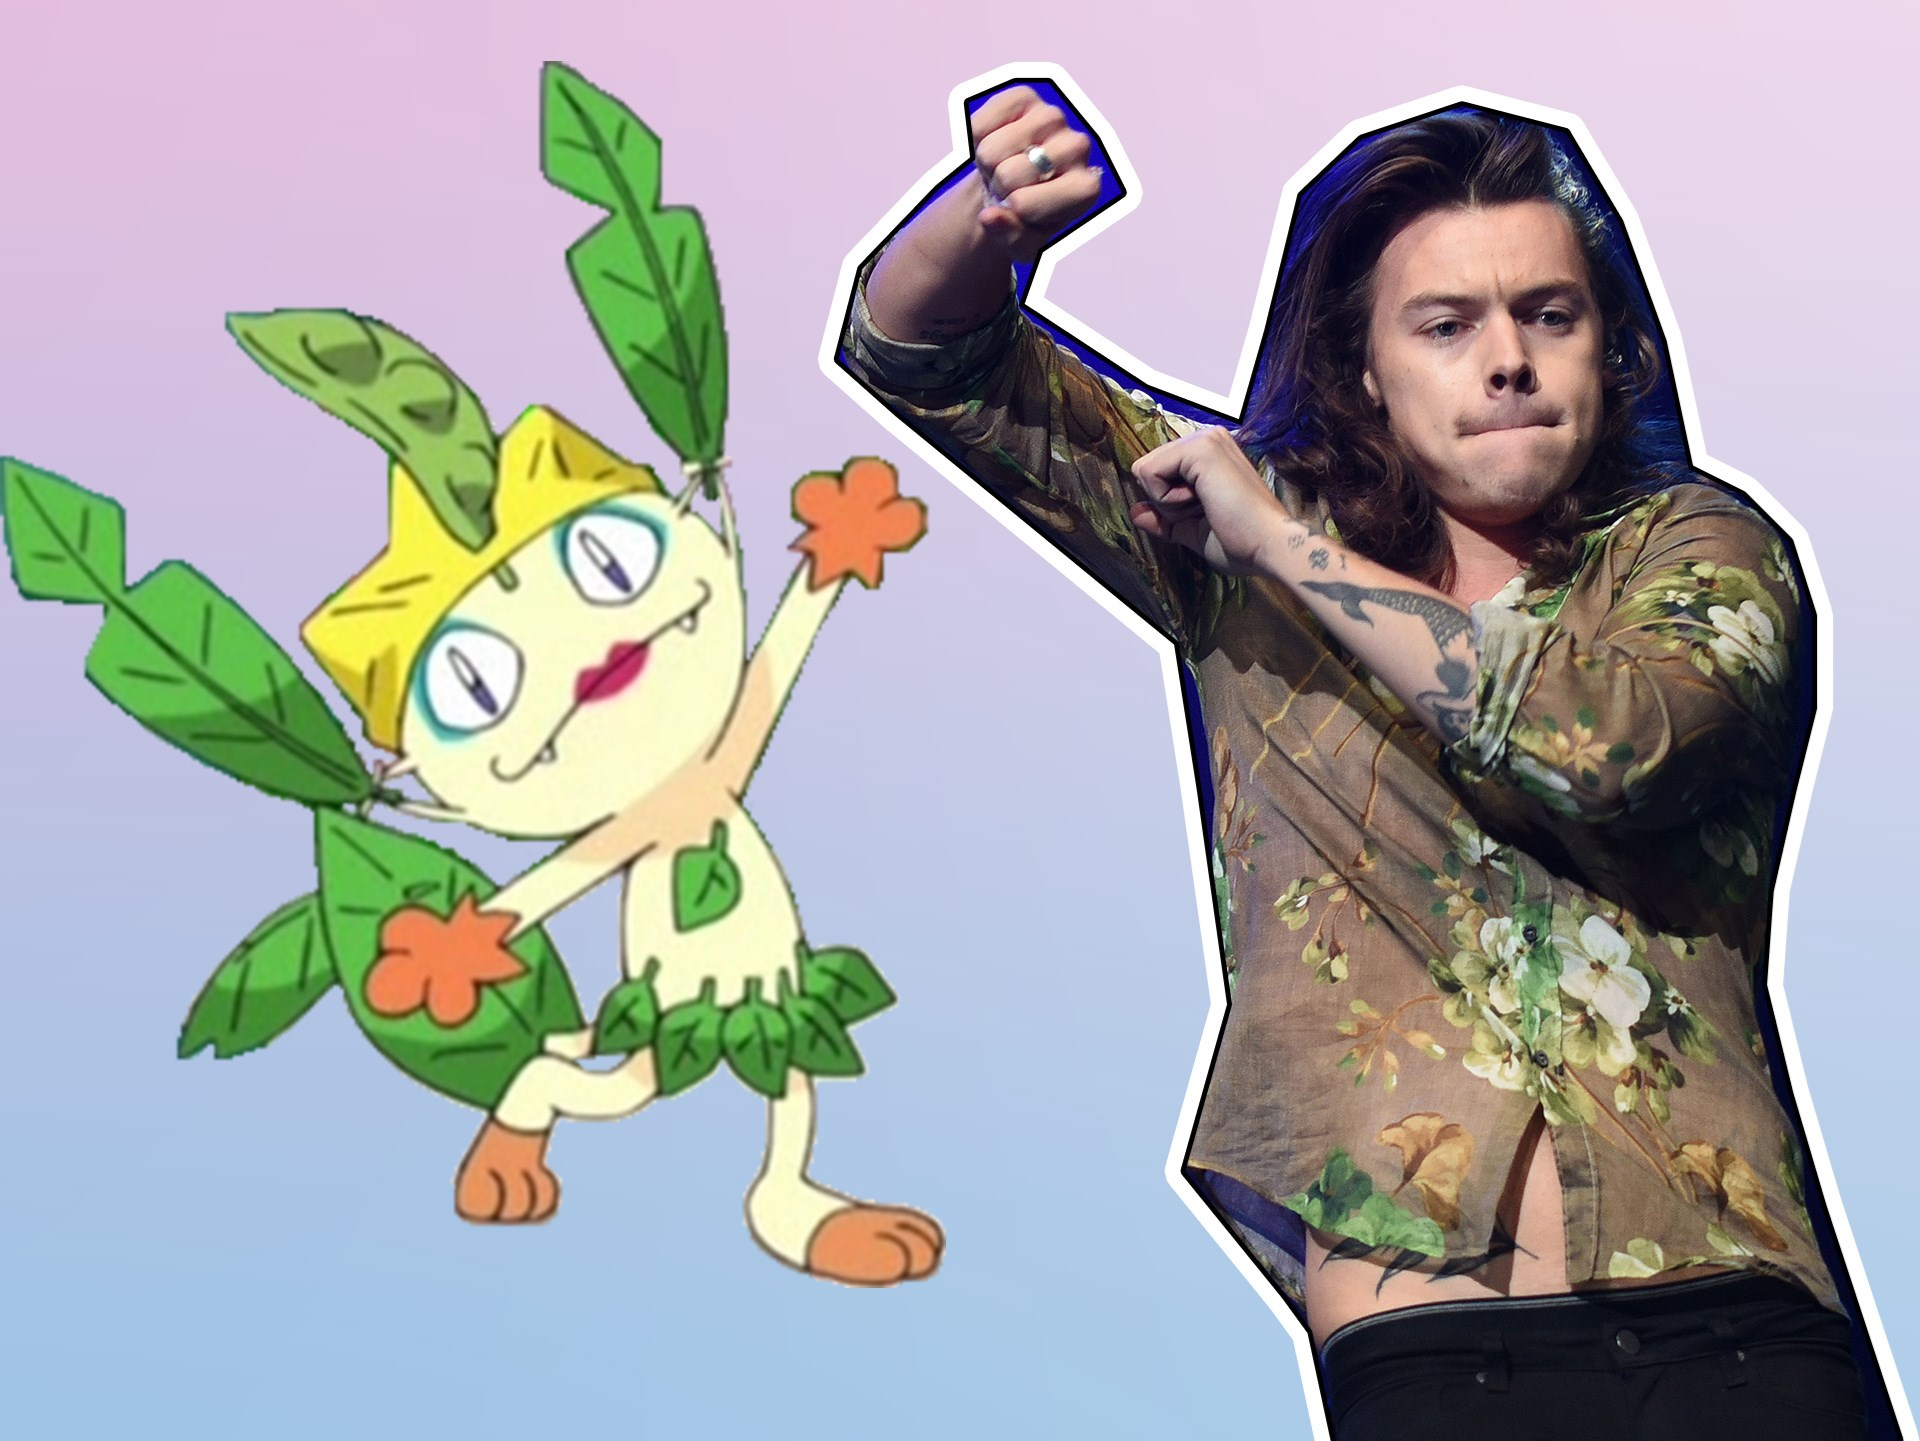 Flamboyant? Talented? A force to be reckoned with? Harry Styles = Meowth.